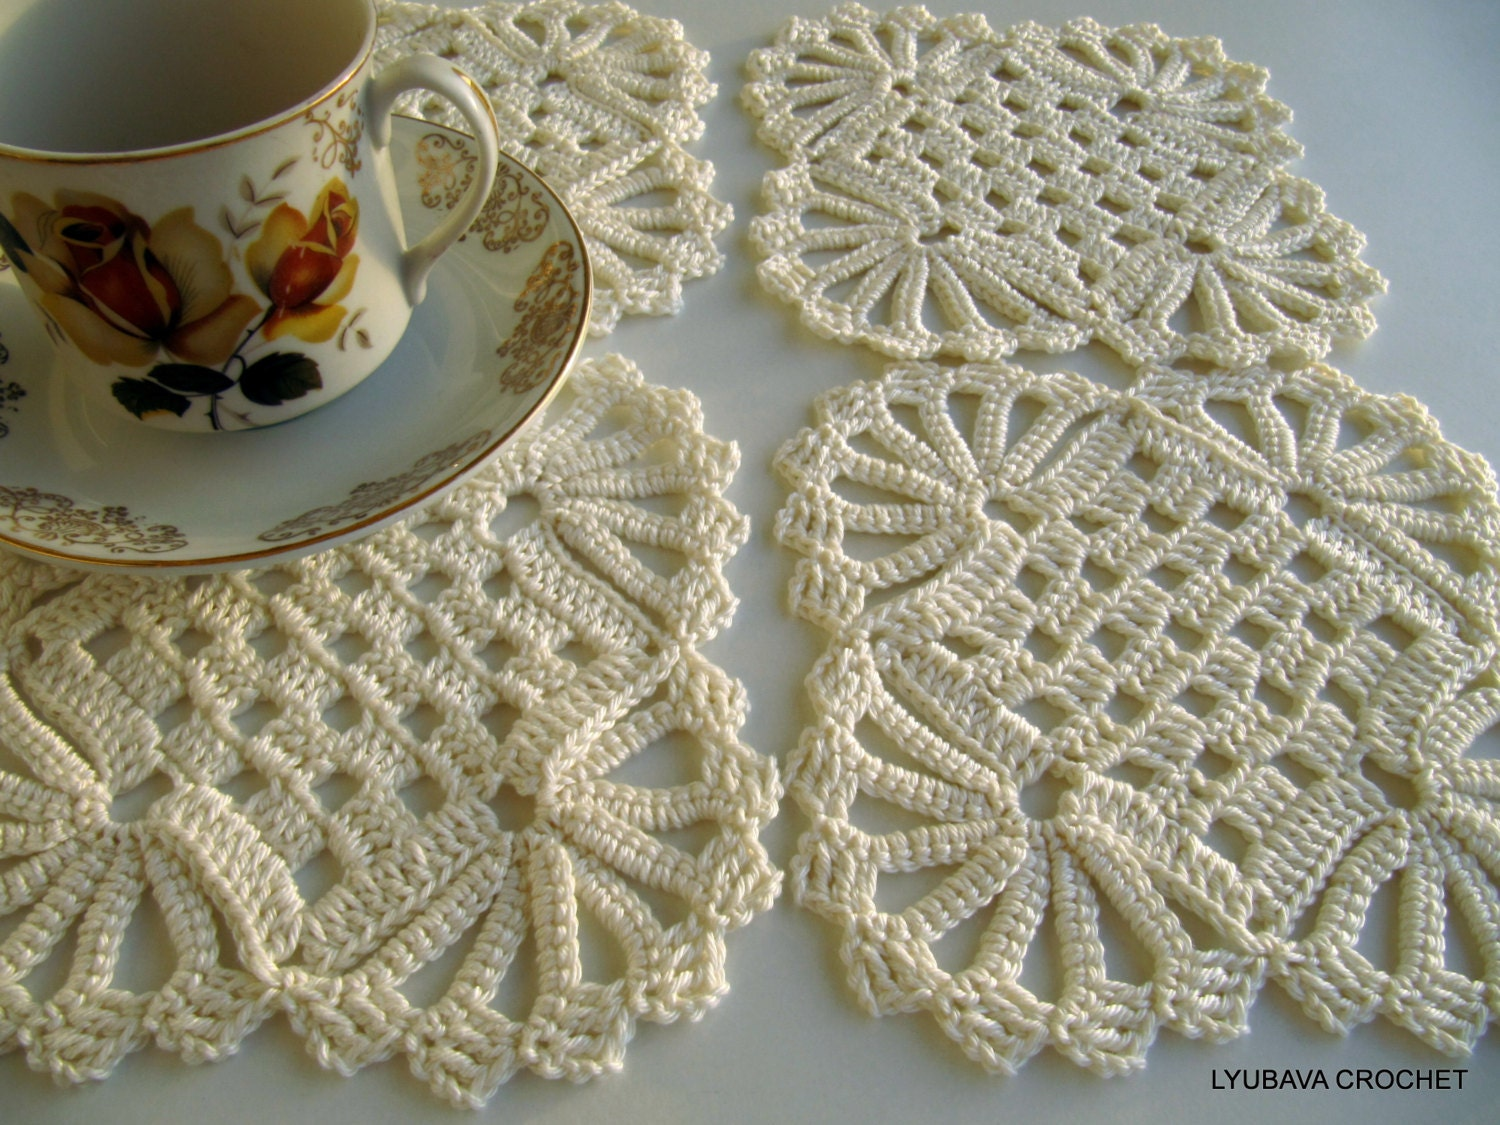 Crochet Patterns Coasters : CROCHET PATTERN Crochet Coasters Shabby Chic by LyubavaCrochet